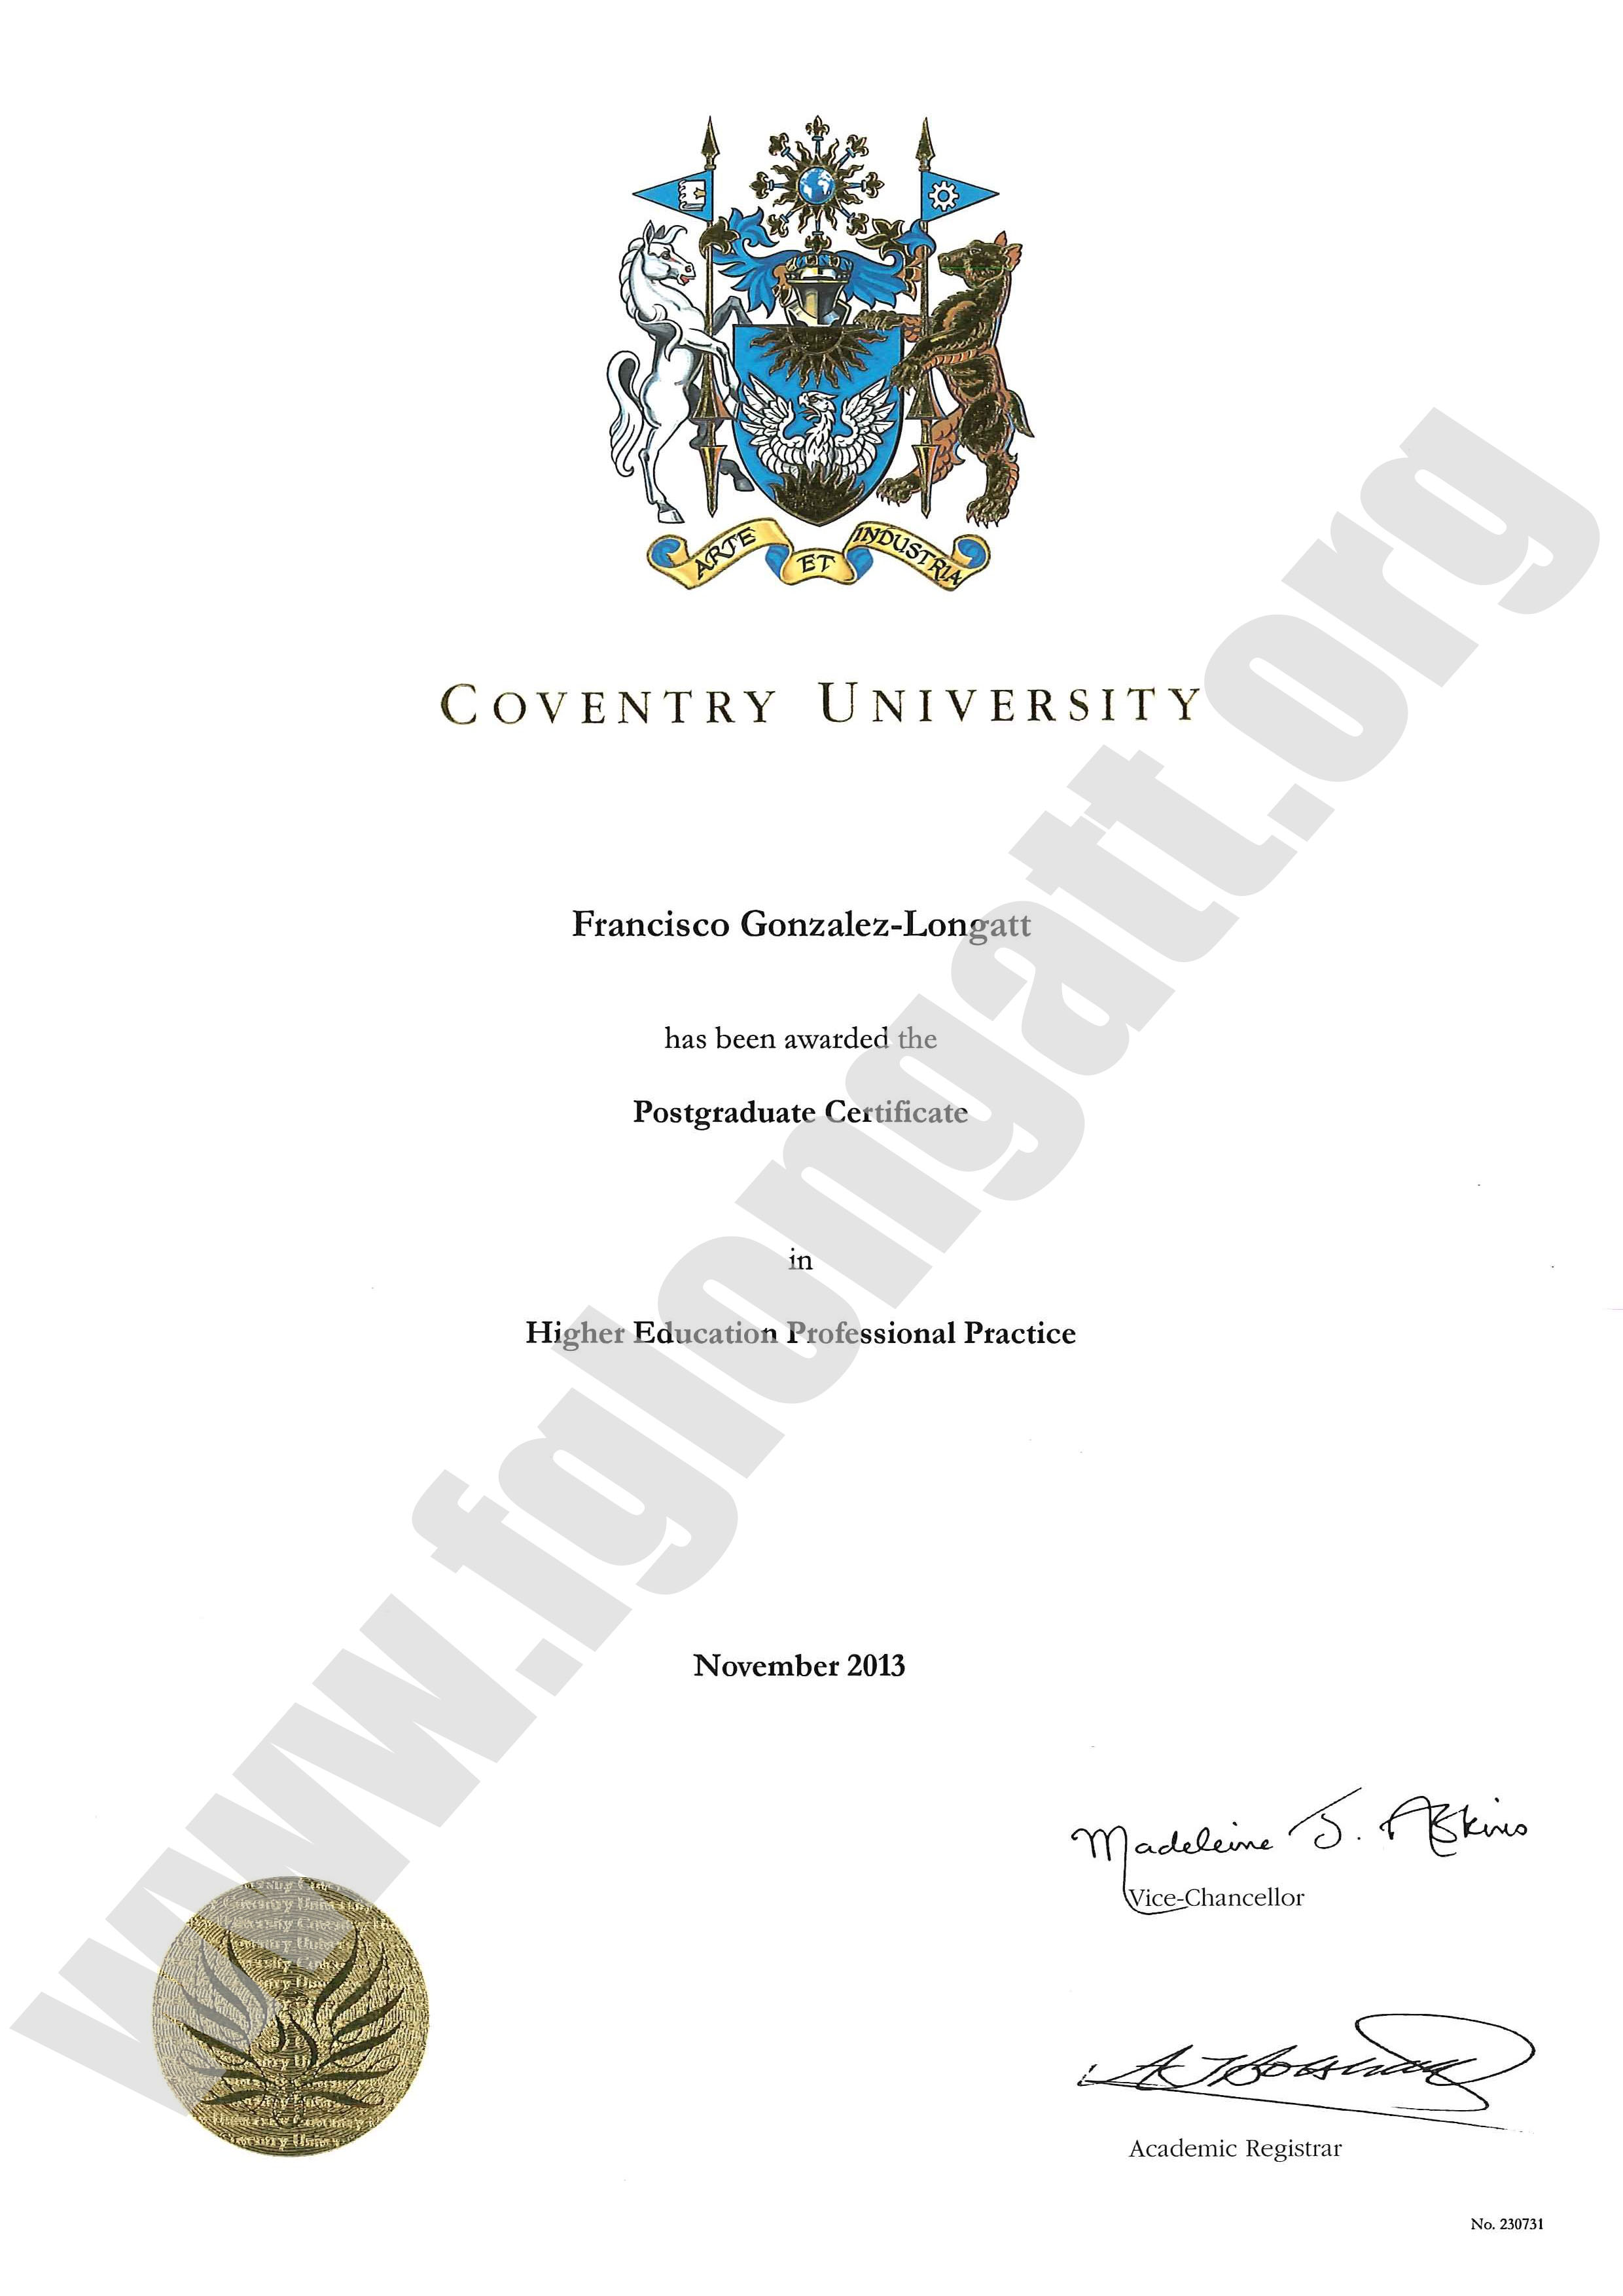 phd thesis on power system Phd thesis – power systems engineering research center by scott greene a dissertation submitted in partial fulfillment of the requirements for the degree of.